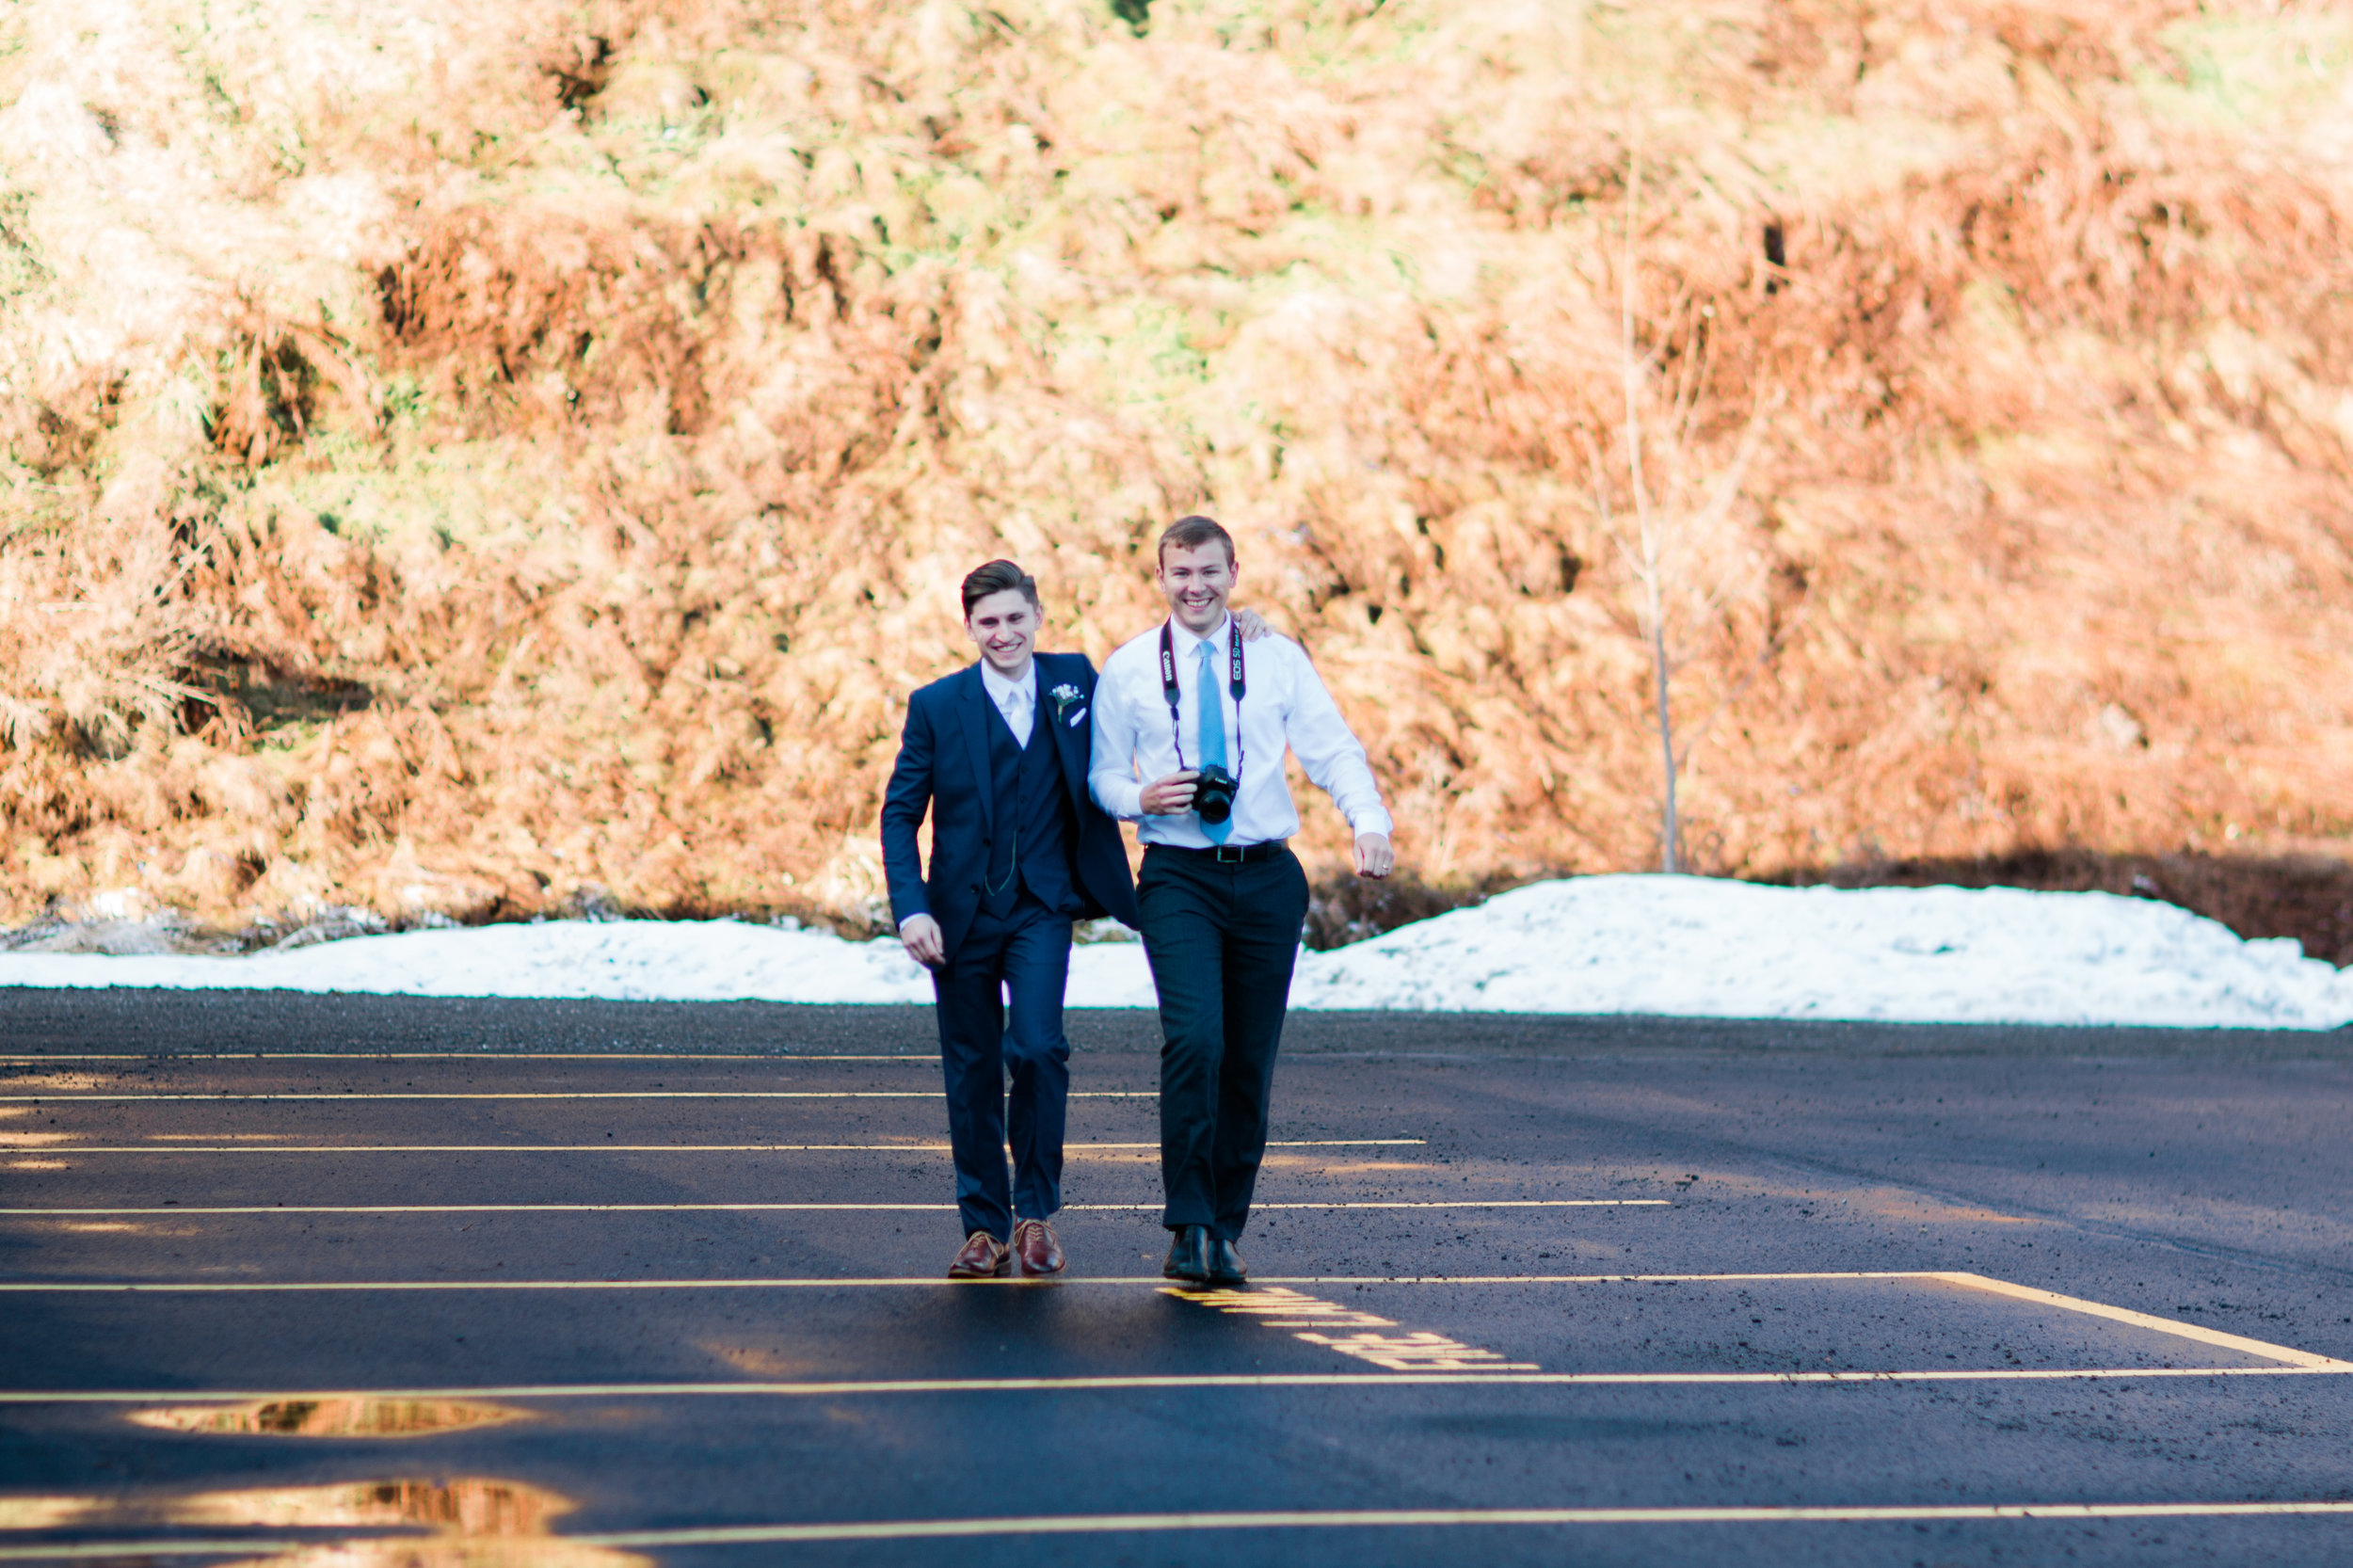 Jackson and Connor! It's so much fun when our bride and groom are friends of ours!